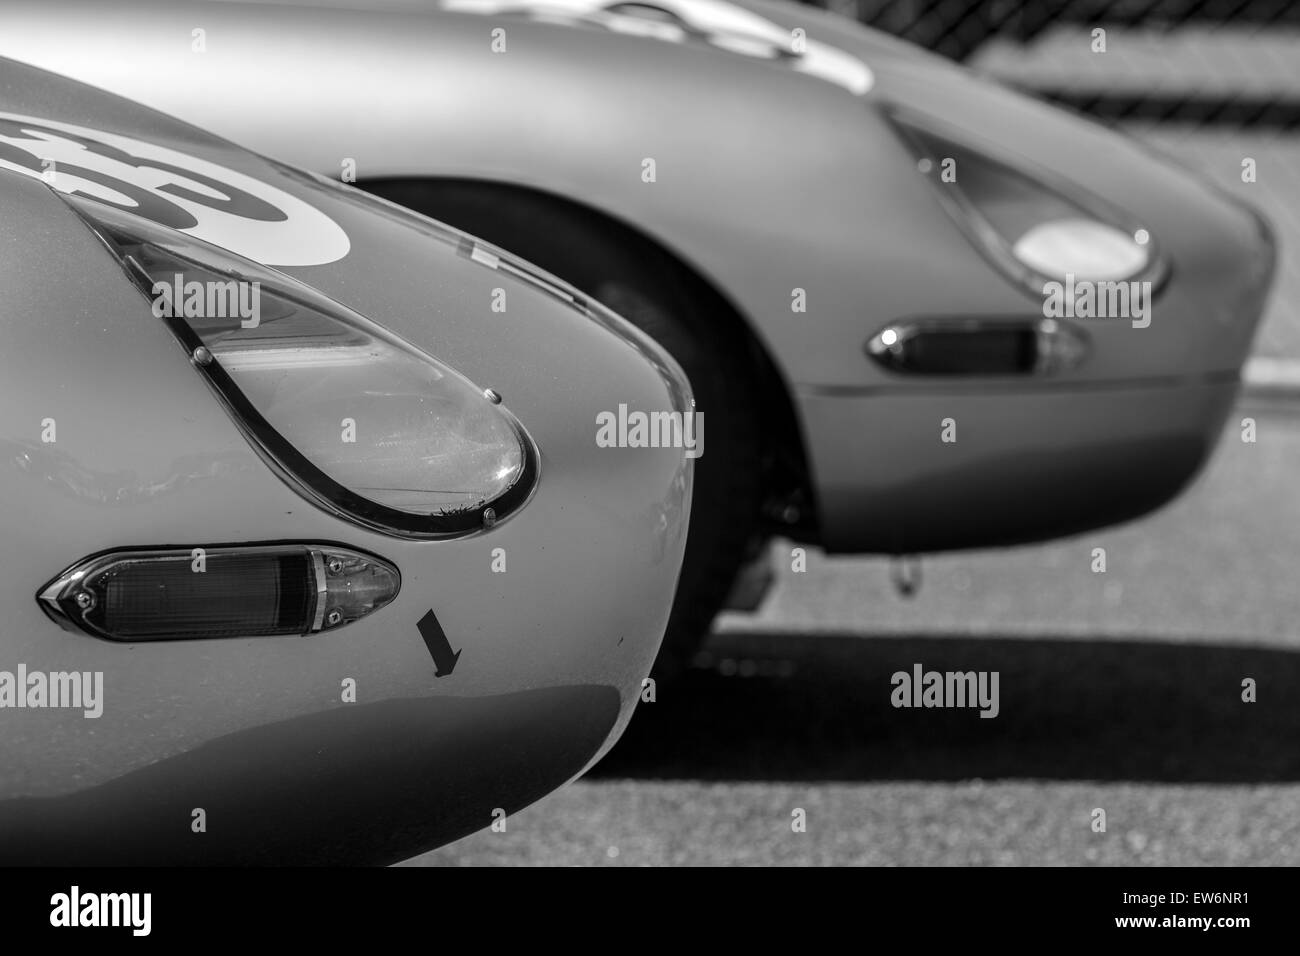 Two racing E Type Jaguars at Brands Hatch. - Stock Image